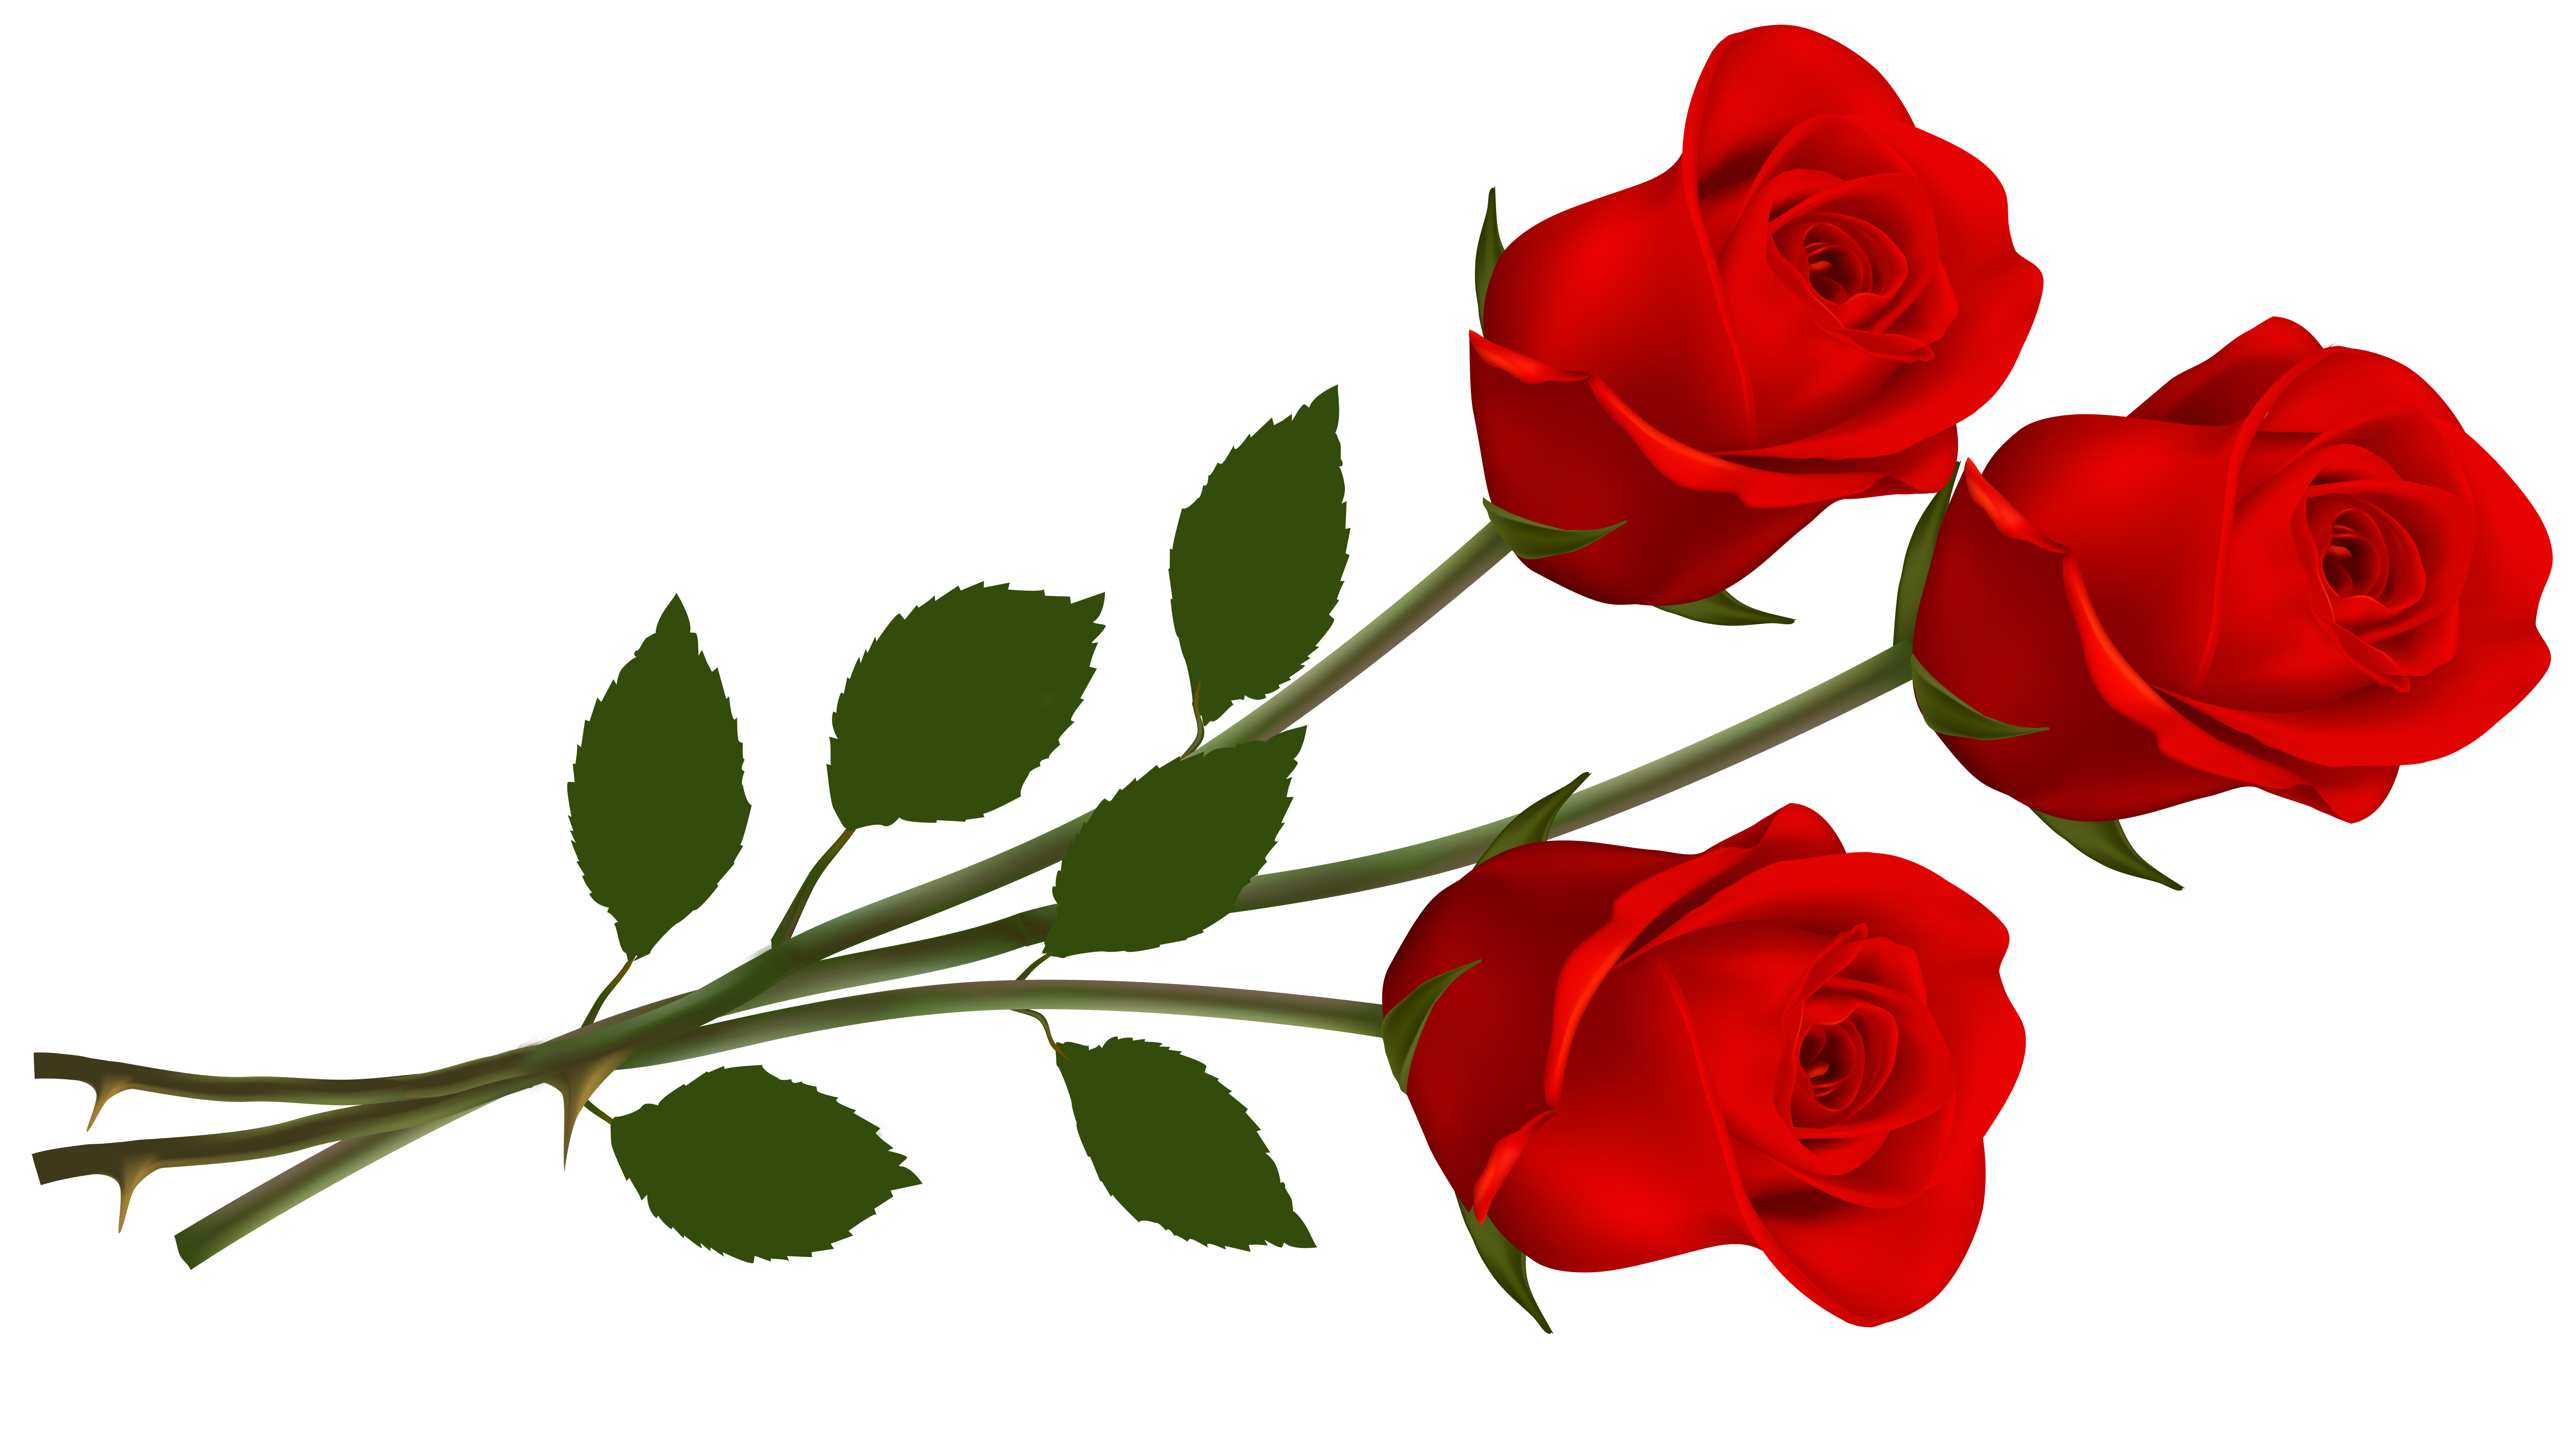 Clip Art Red Rose | Roses | Red roses, Single red rose, Rose clipart graphic royalty free